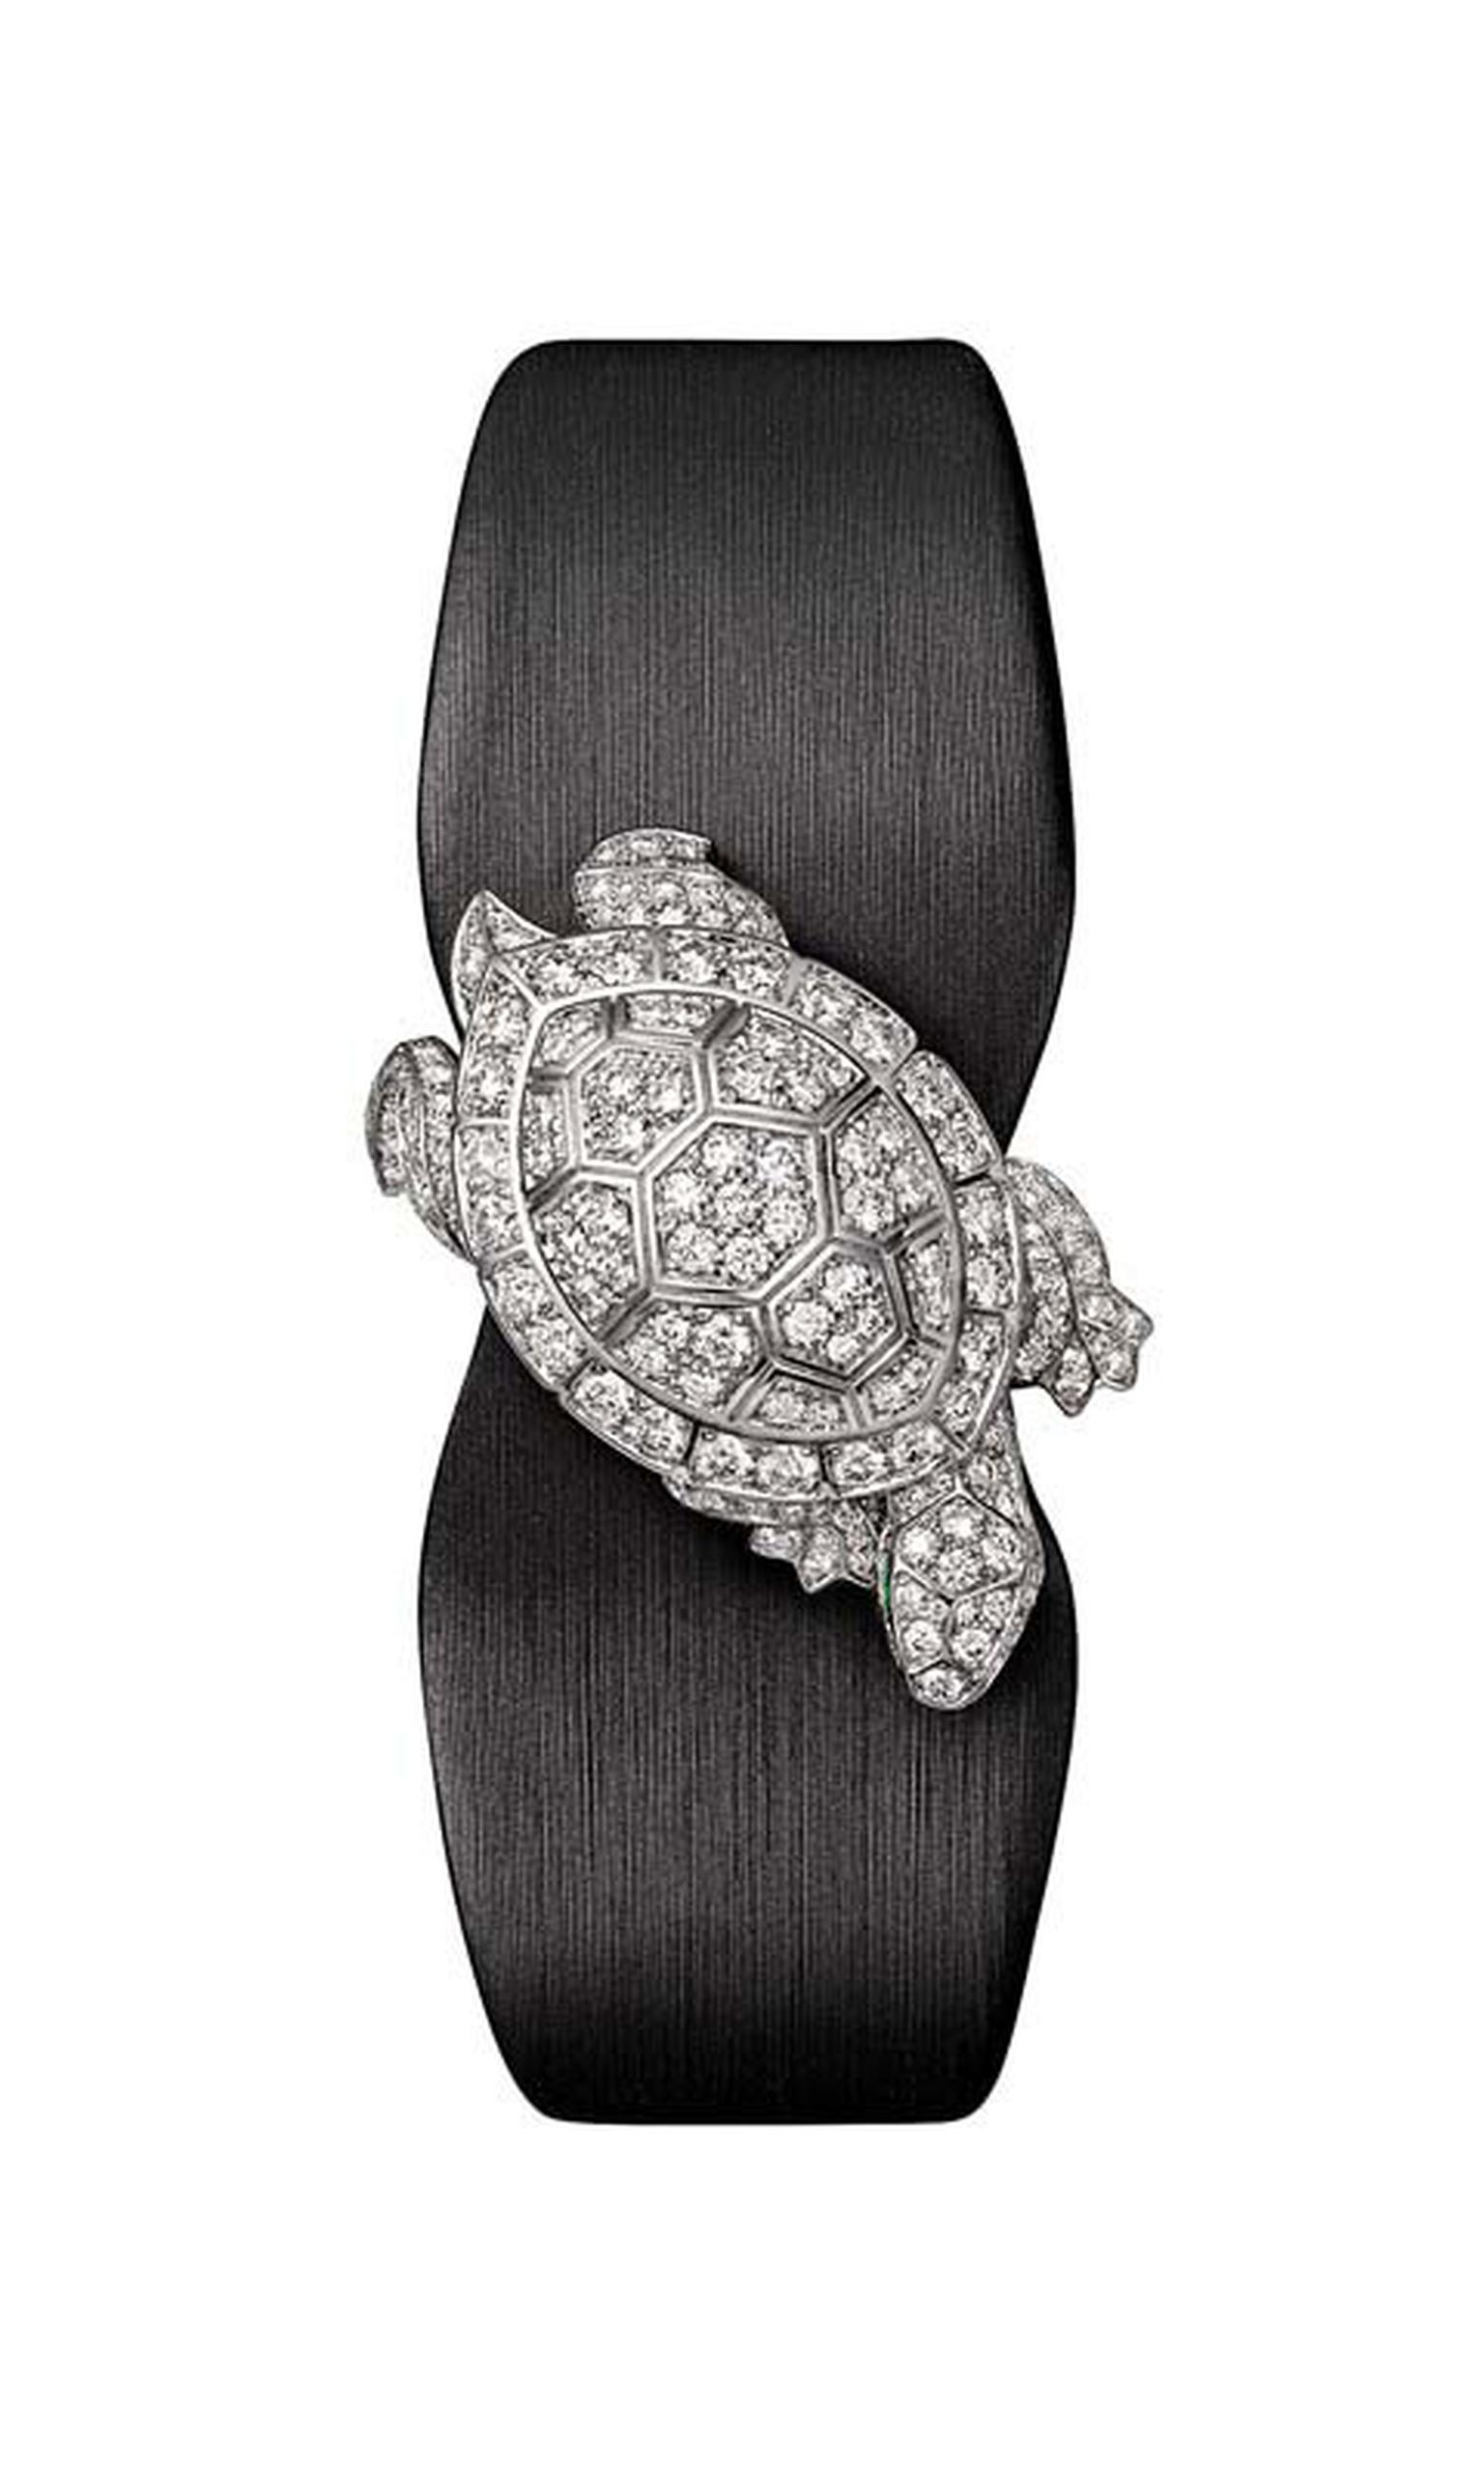 Cartier_Fabuleux_TORTOISE_DIAMONDS_1